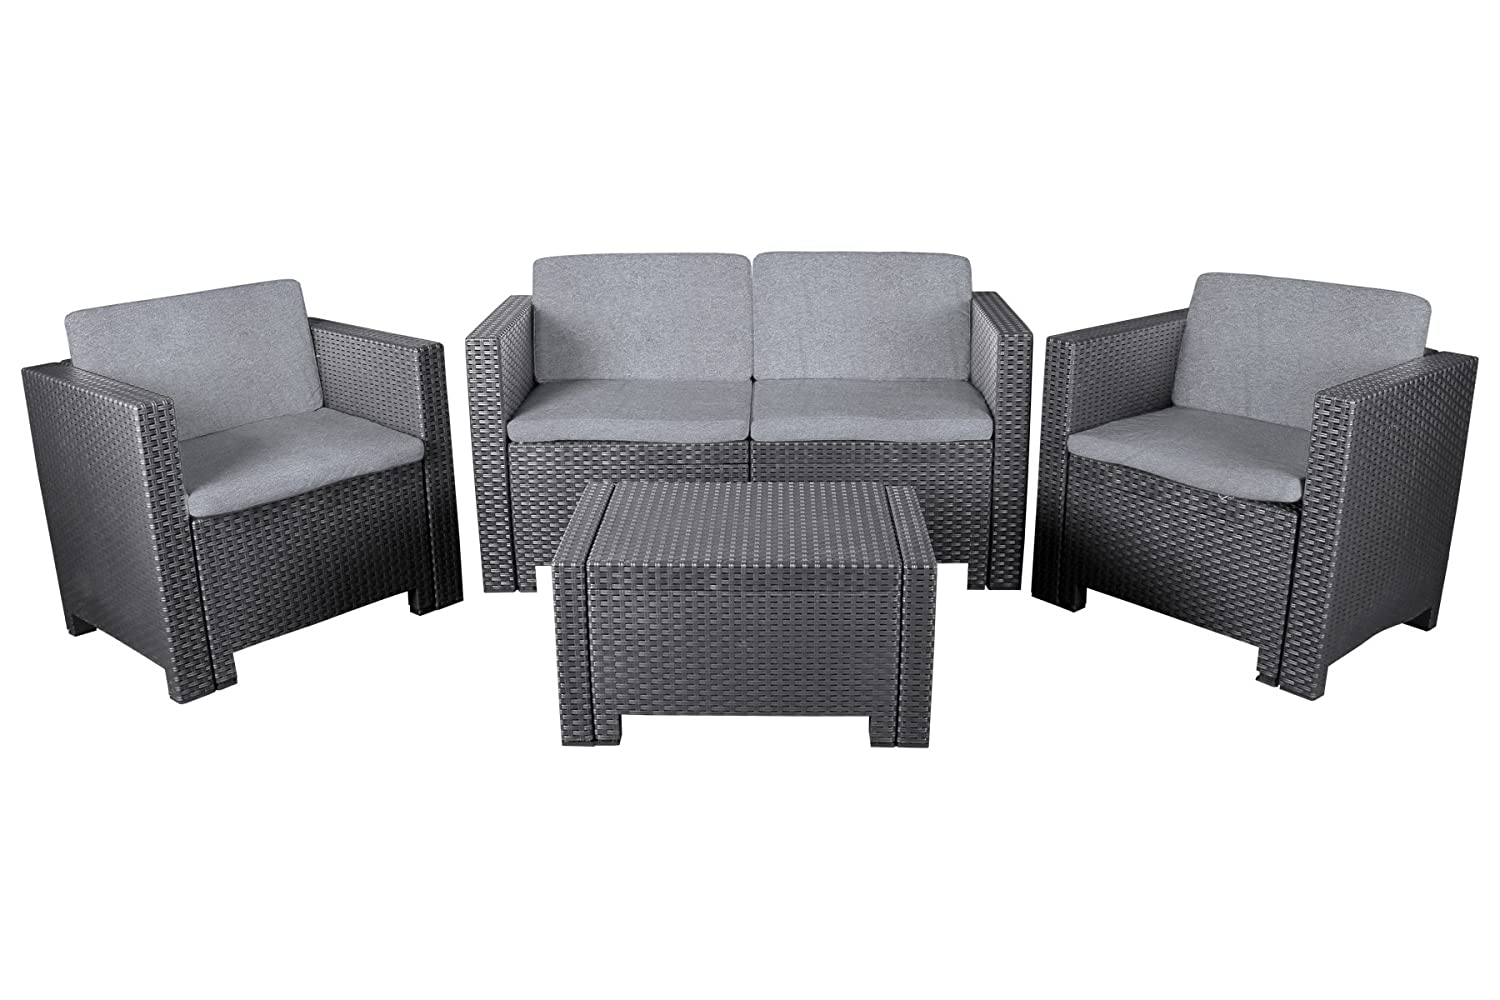 Lounge Sofa Allibert Allibert Lounge Set Quotcannes Quot Modische Rattanoptik 4 Tlg